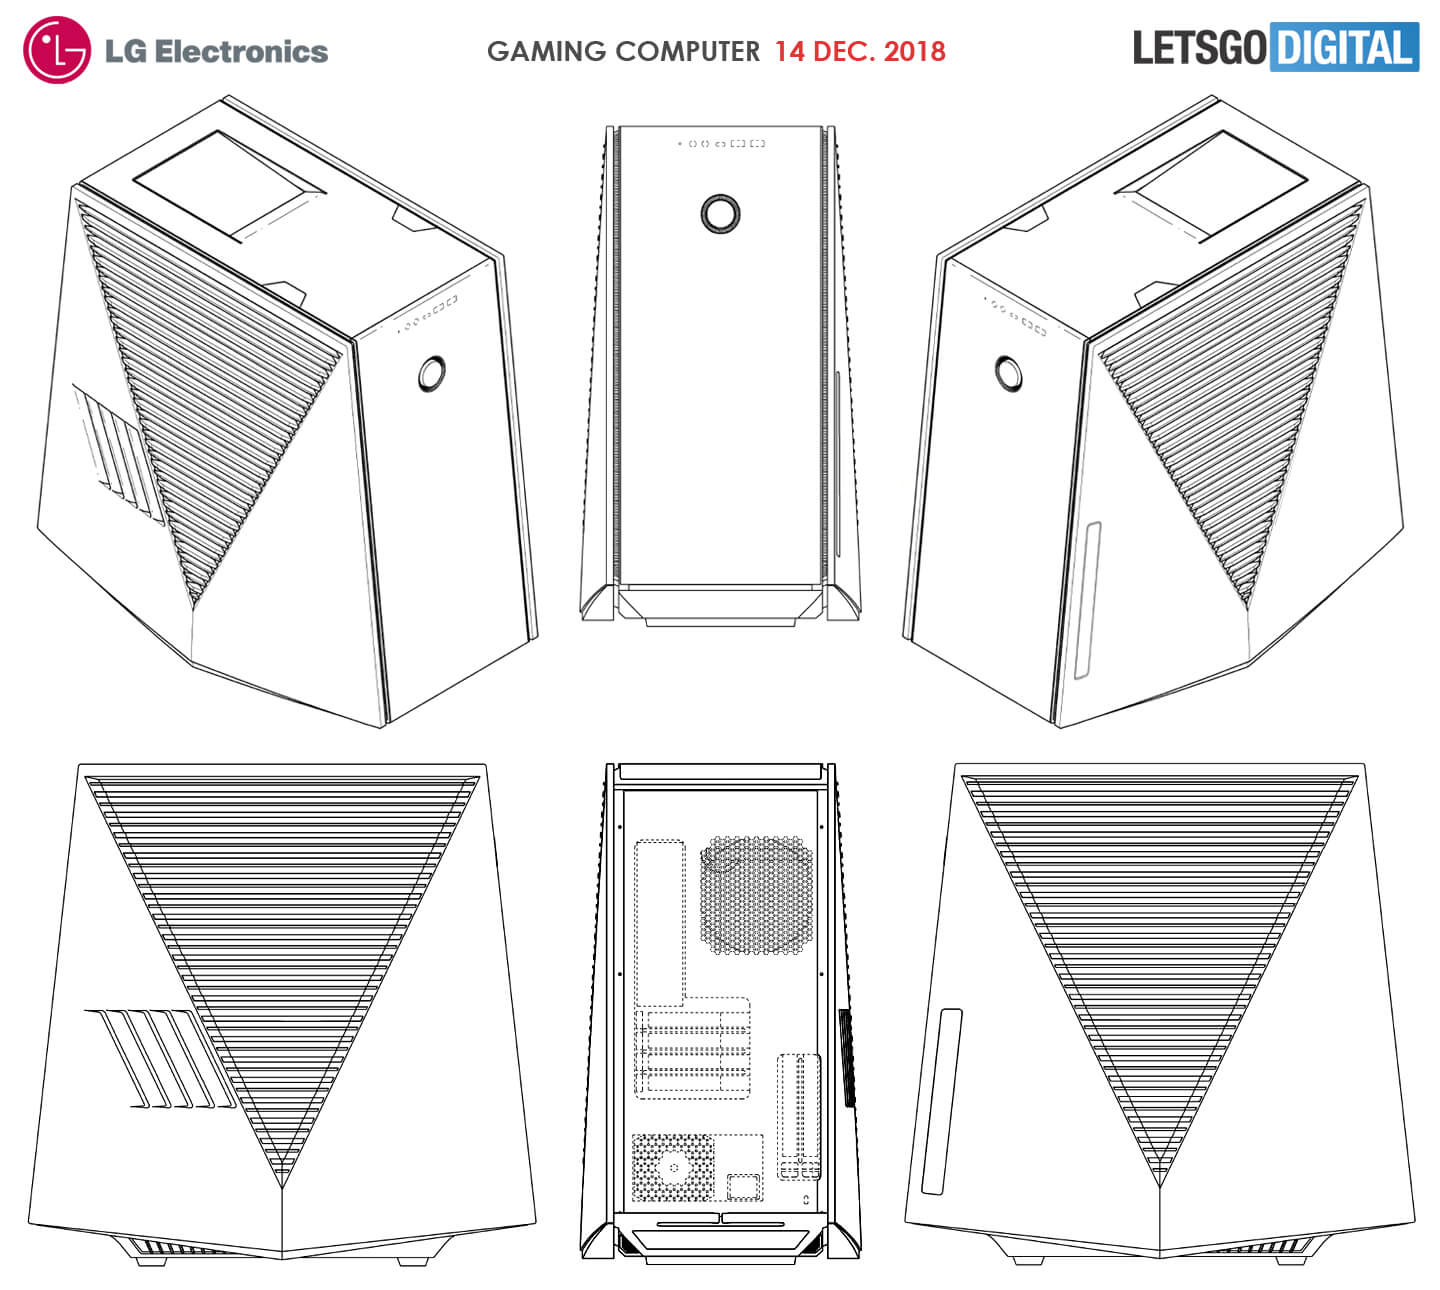 LG game PC